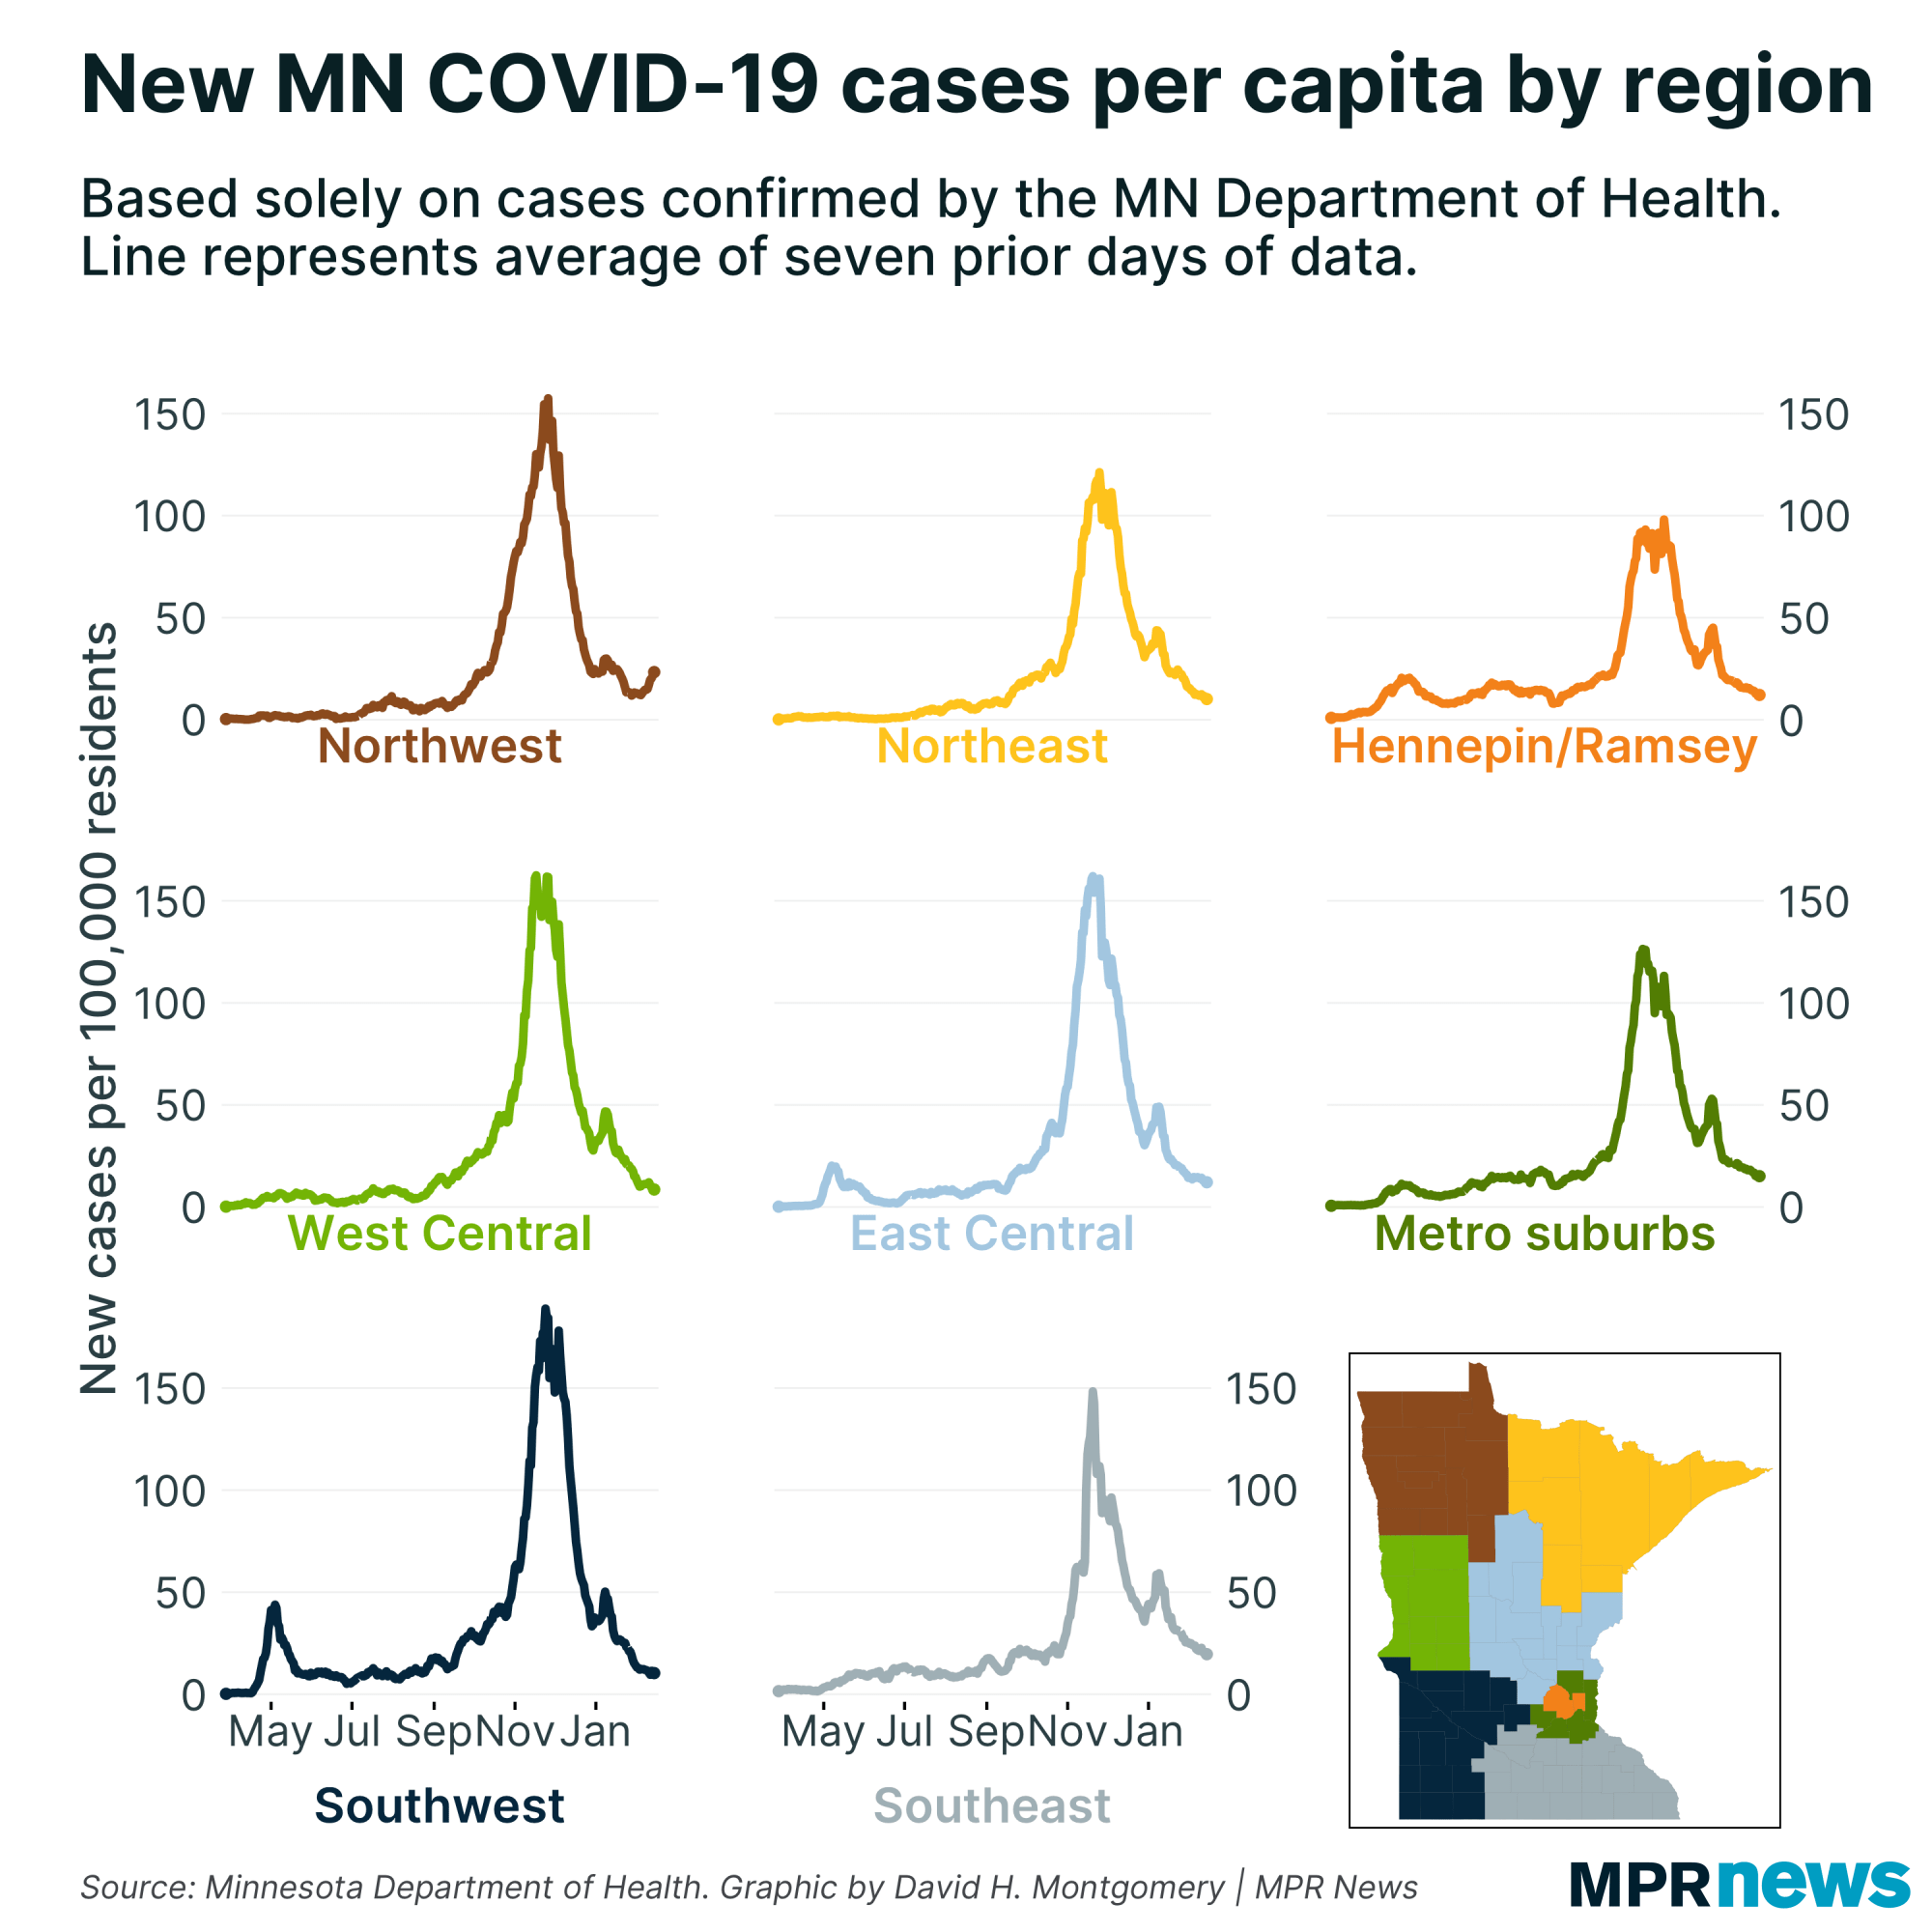 New COVID-19 cases distributed in the Minnesota region